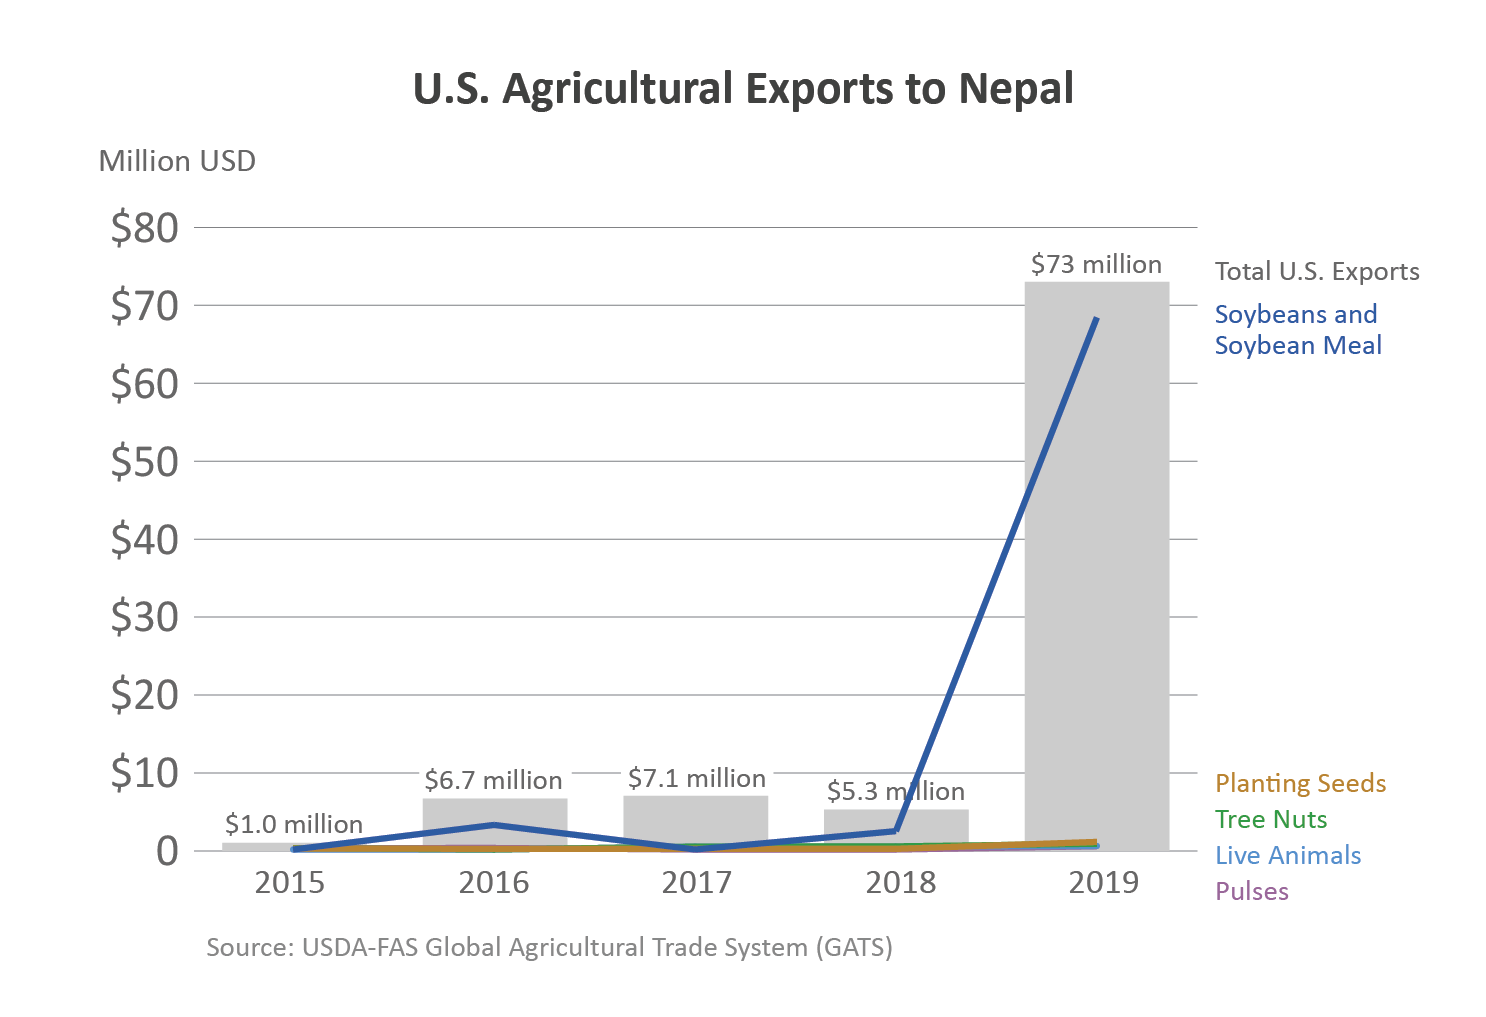 Chart showing U.S. agricultural exports to Nepal.  In 2019, ag exports totaled $73 million.